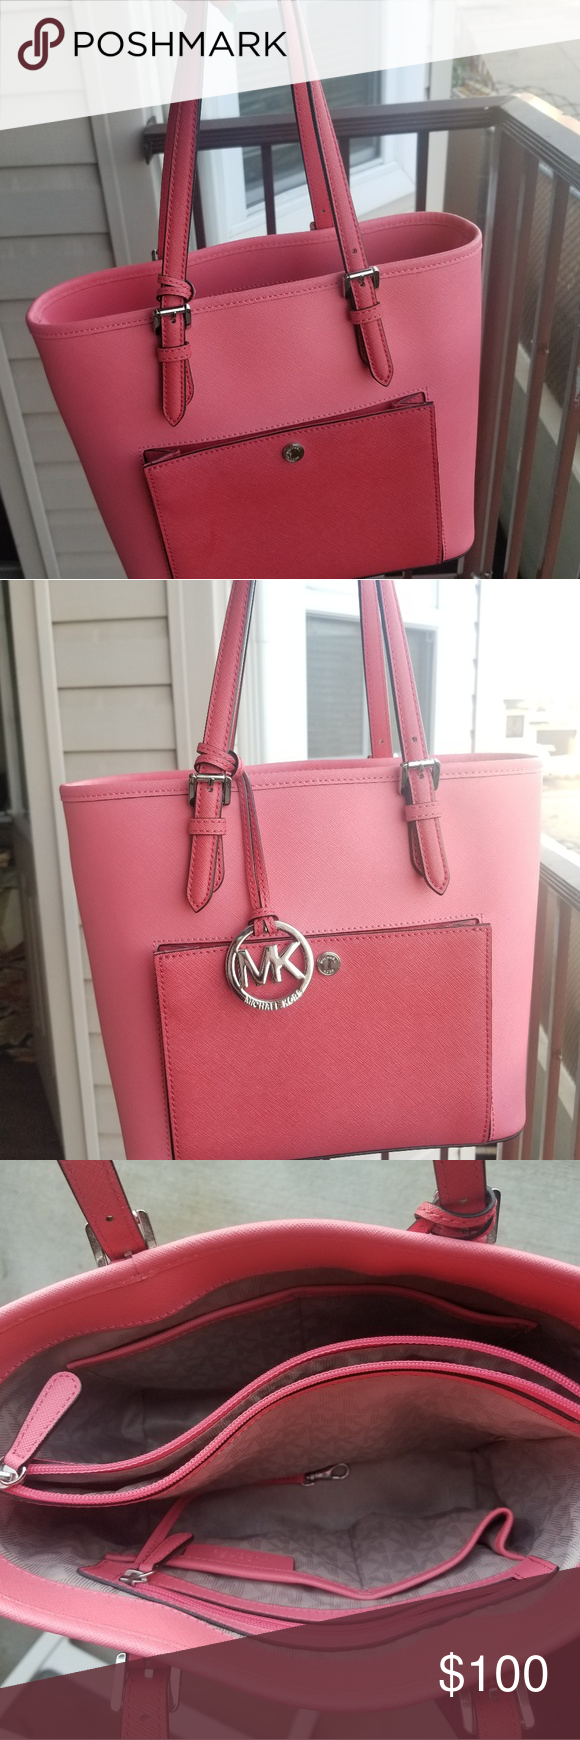 Michael Kors Bag Beautiful coral two toned bag. Front pocket and adjustable stra... -  Michael Kors Bag Beautiful coral two toned bag. Front pocket and adjustable straps   Excellent cond - #adjustable #AlexaChung #AngelaSimmons #Bag #Beautiful #CannesFilmFestival #CelebritiesFashion #CelebrityStyle #coral #CurvyPetiteFashion #DianeKruger #EmmaRoberts #FashionDesigners #FashionTrends #Front #KendallJennerOutfits #KimKardashian #Kors #LouisVuitton #LouisVuittonHandbags #LouisVuittonMonogram #LvHa